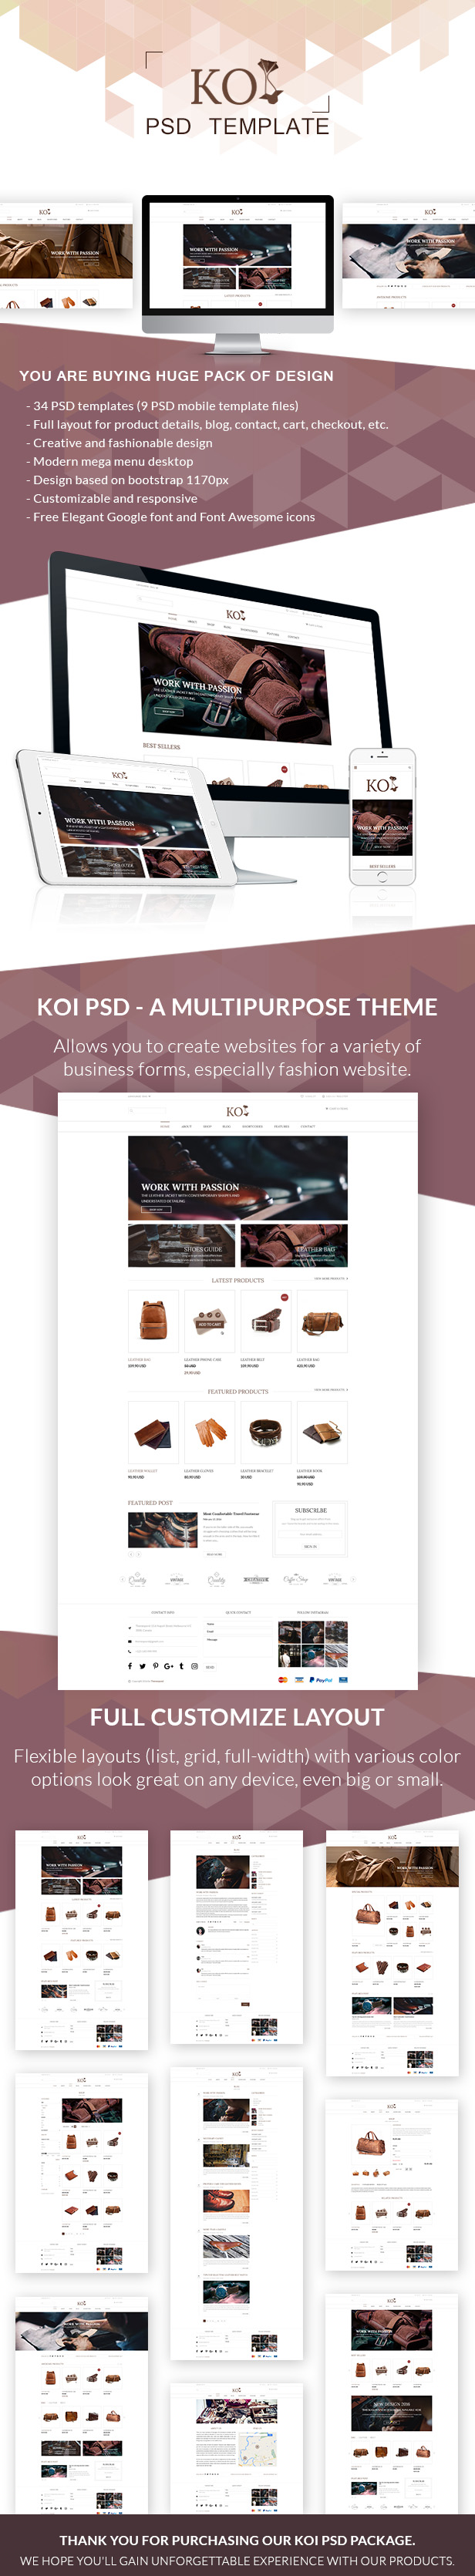 Koi Fashion Store And Ecommerce Multi Purpose Psd Template By Themespond